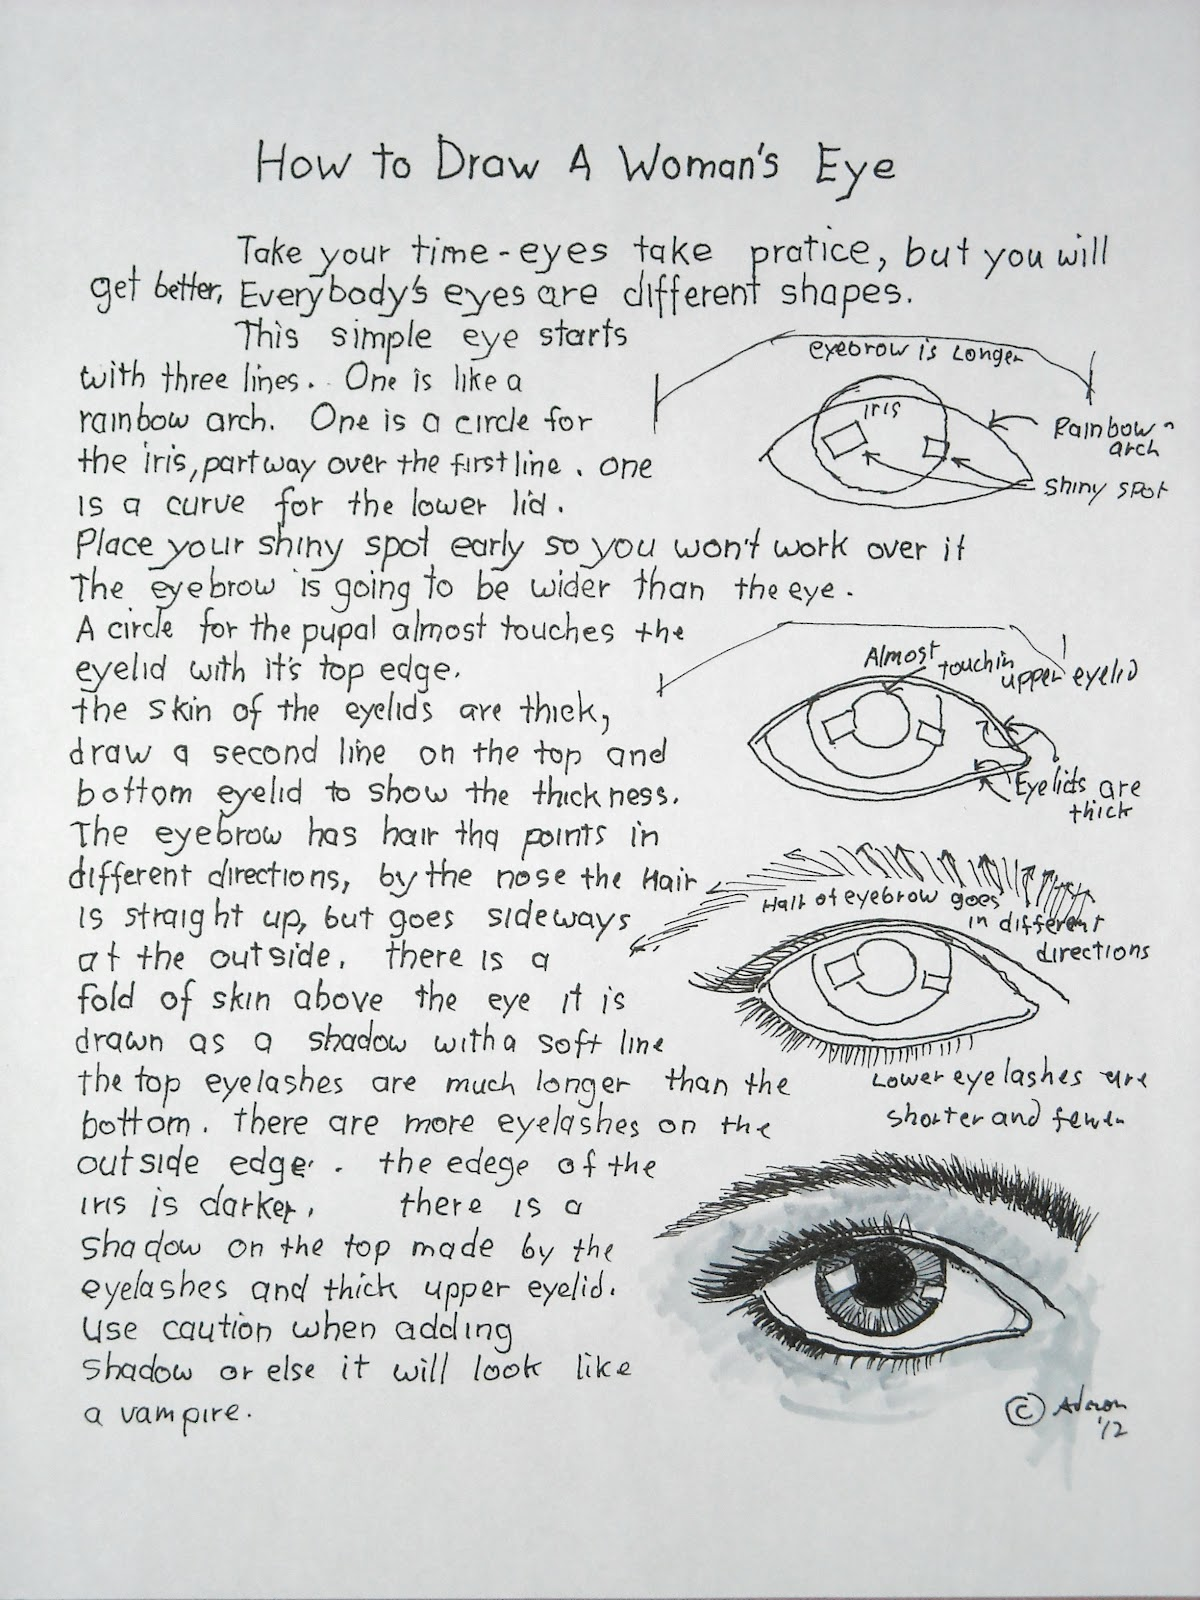 How To Draw A Woman's Eye Worksheet